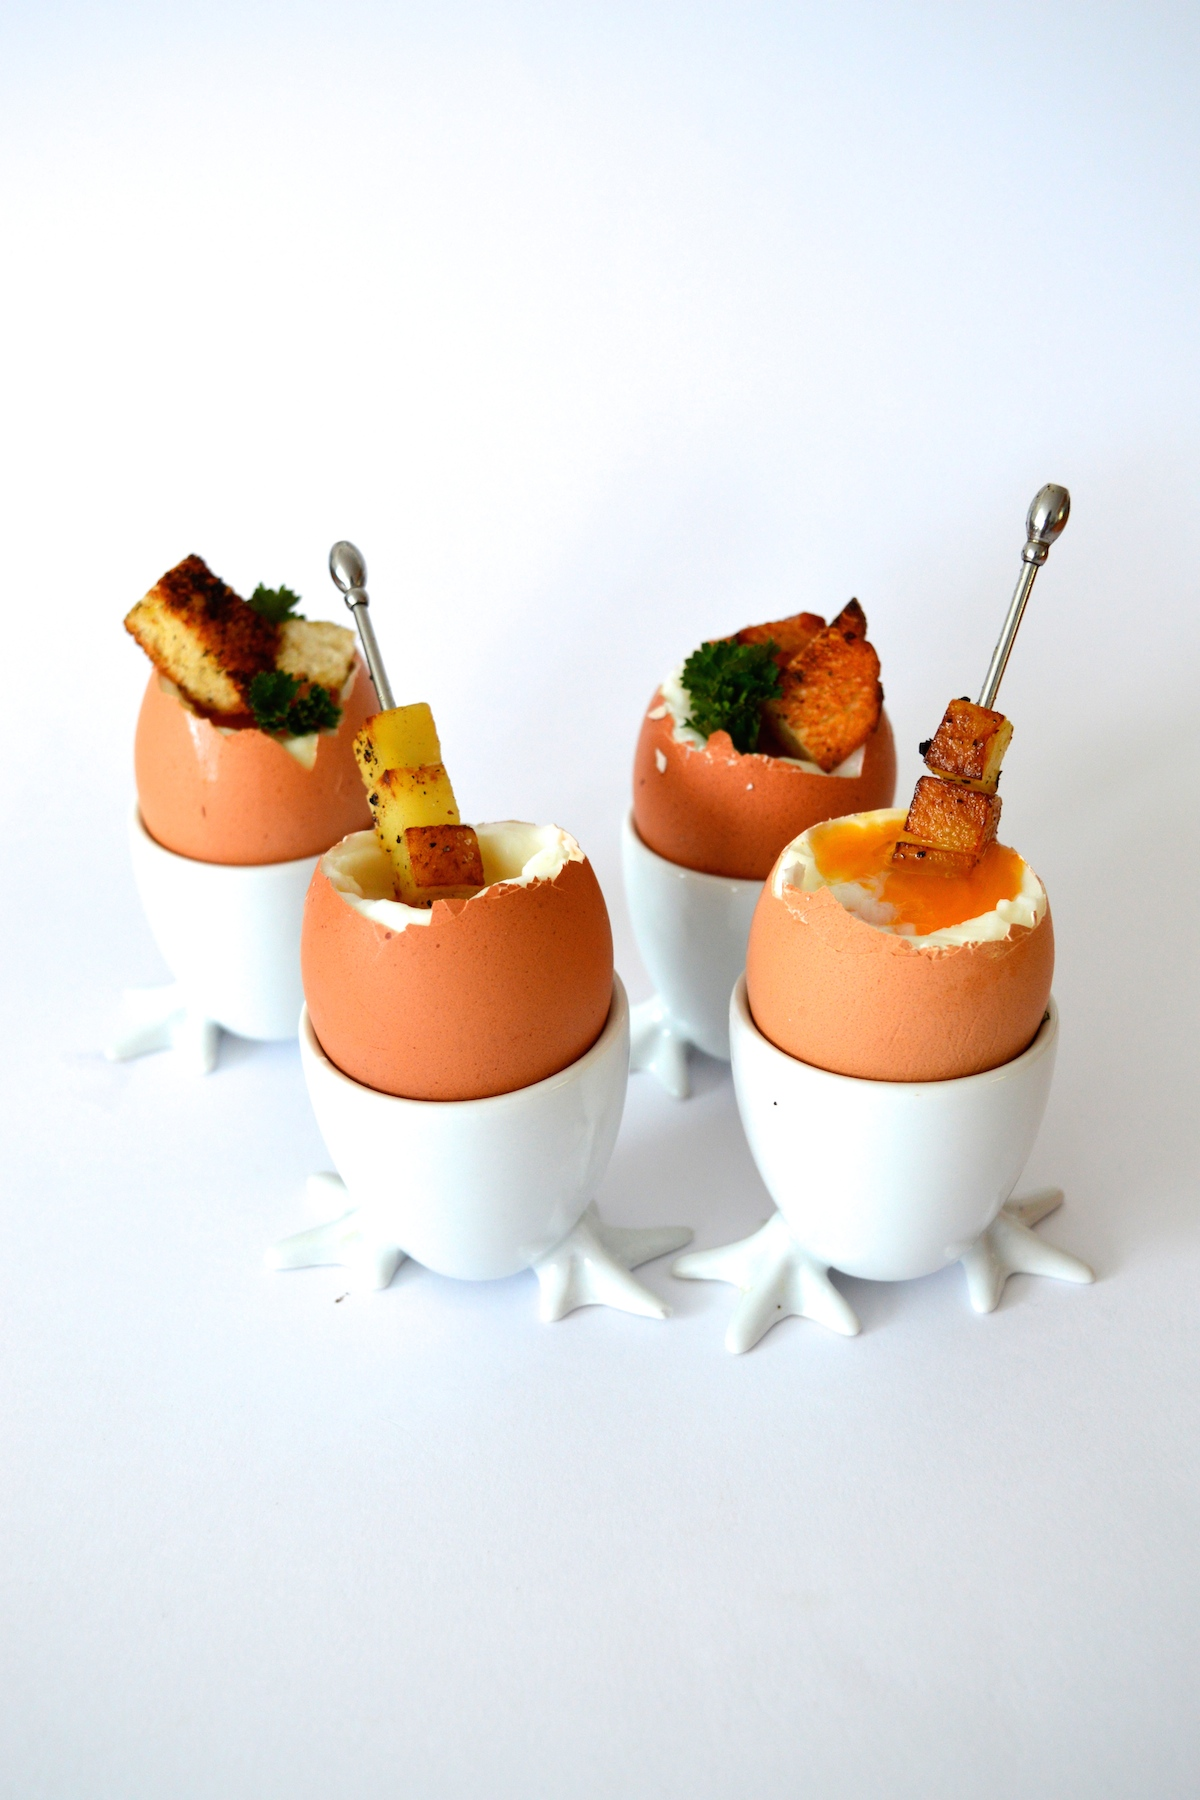 how to eat egg and soldiers